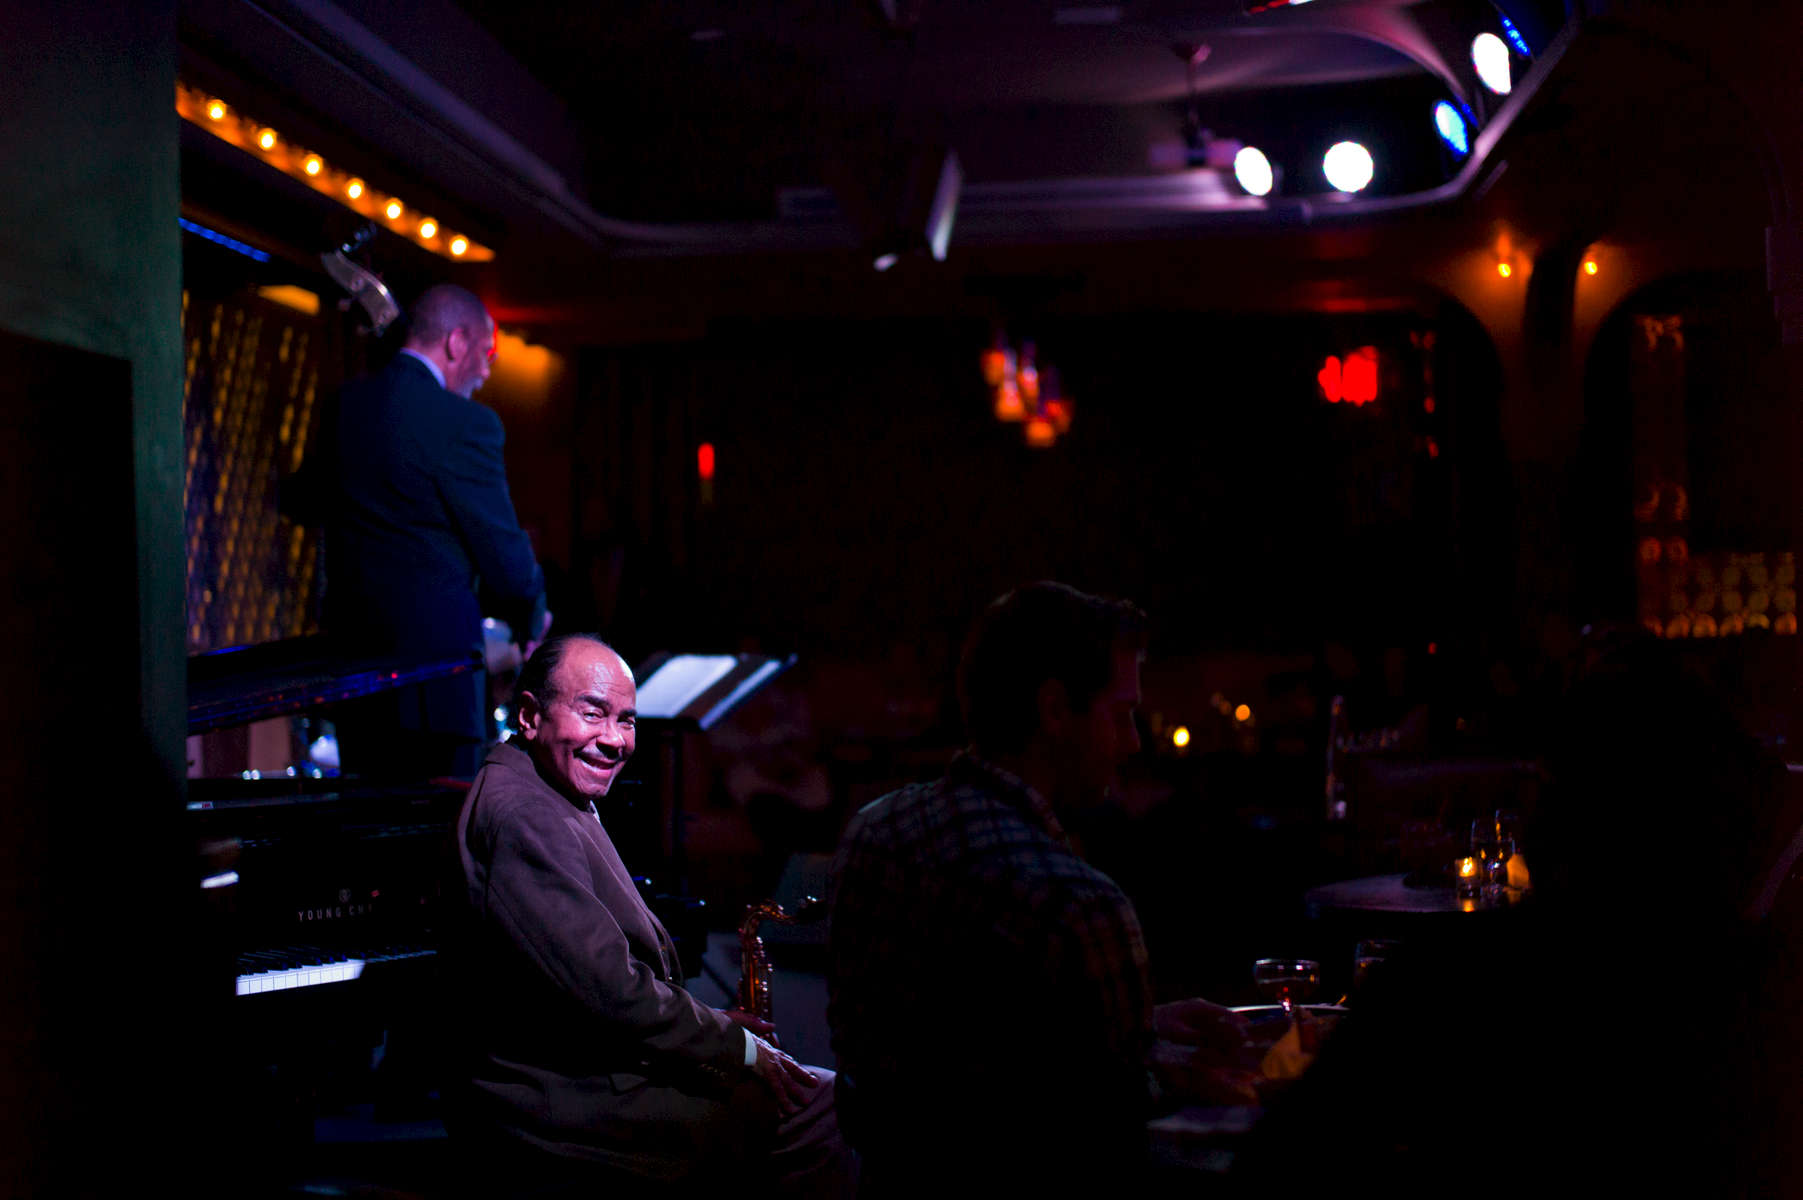 Jazz great and composer Benny Golson and Ron Carter perform at Ginny's Supper Club in Harlem. The club is owned by chef Marques Samuelsson.